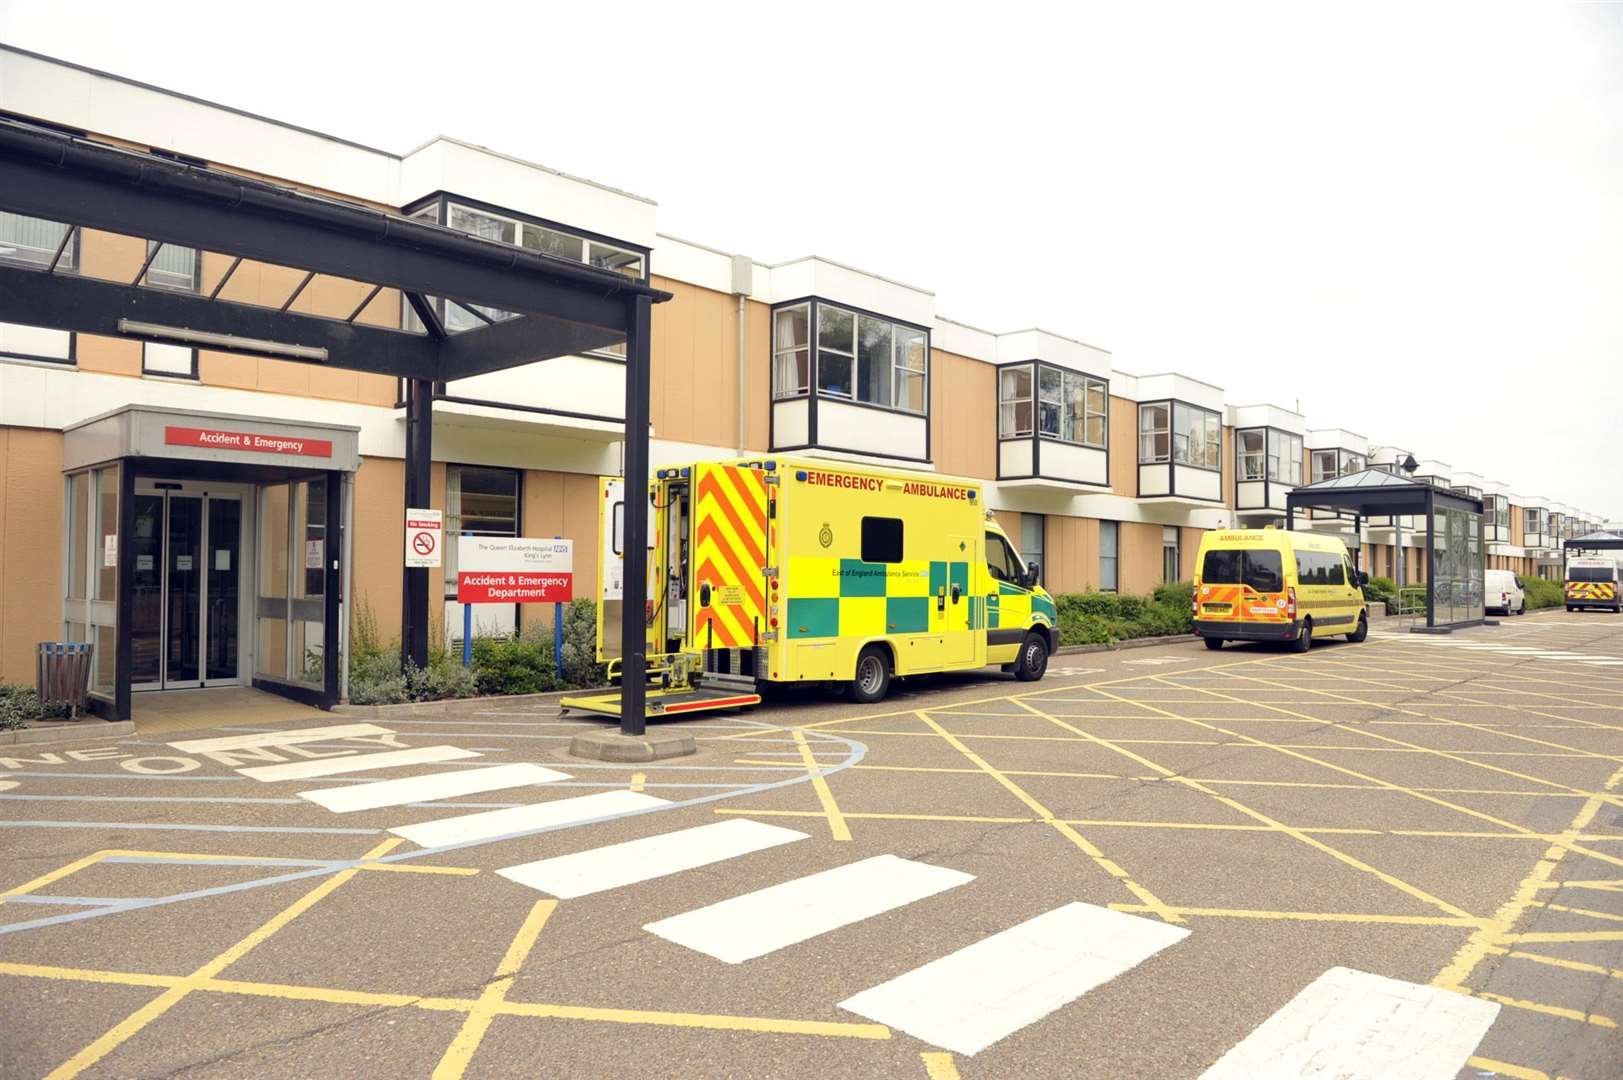 QEH General Views of the outside of the hospital (35995277)